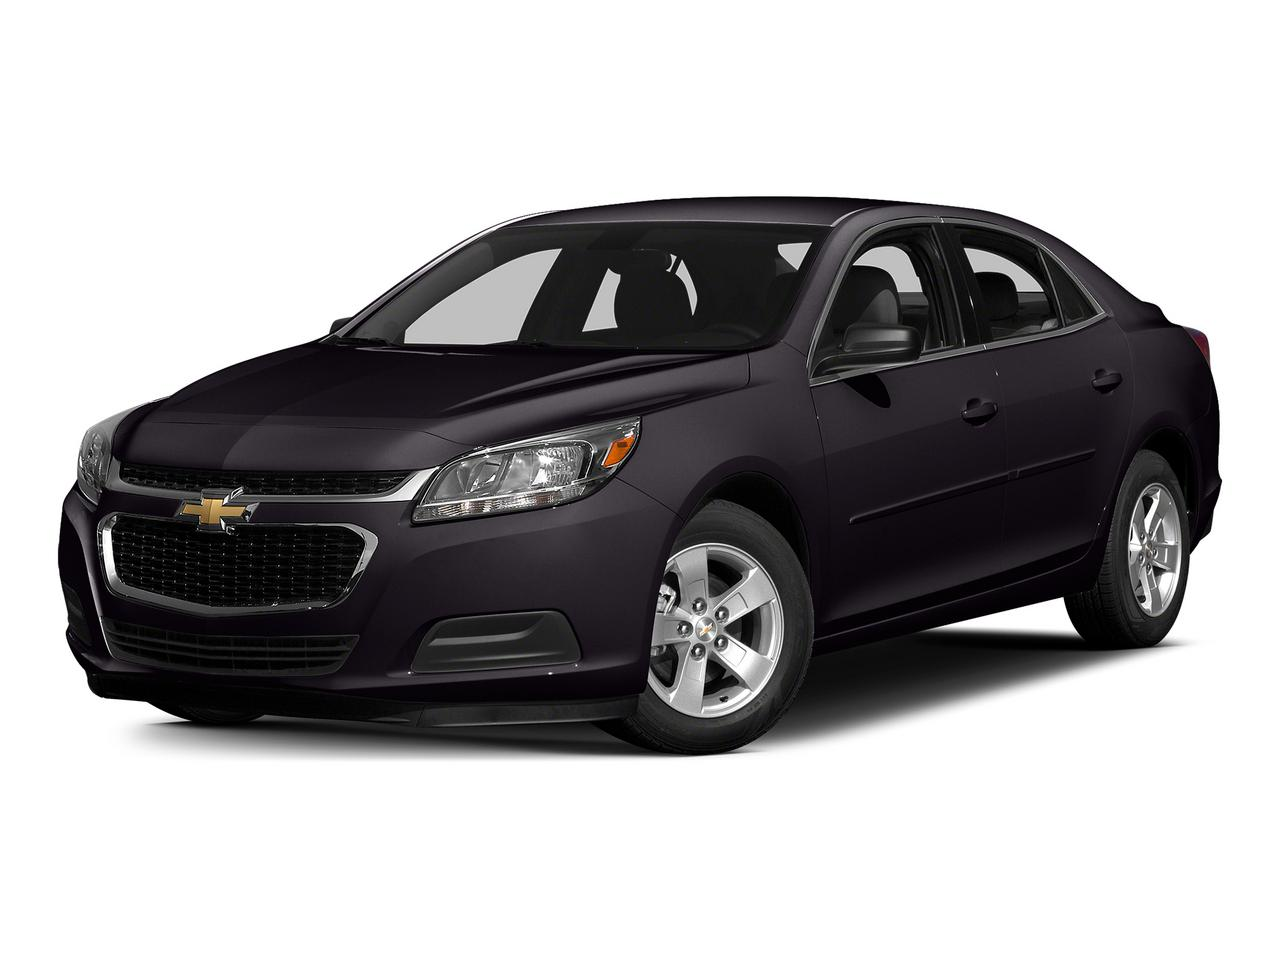 2015 Chevrolet Malibu Vehicle Photo in Terryville, CT 06786